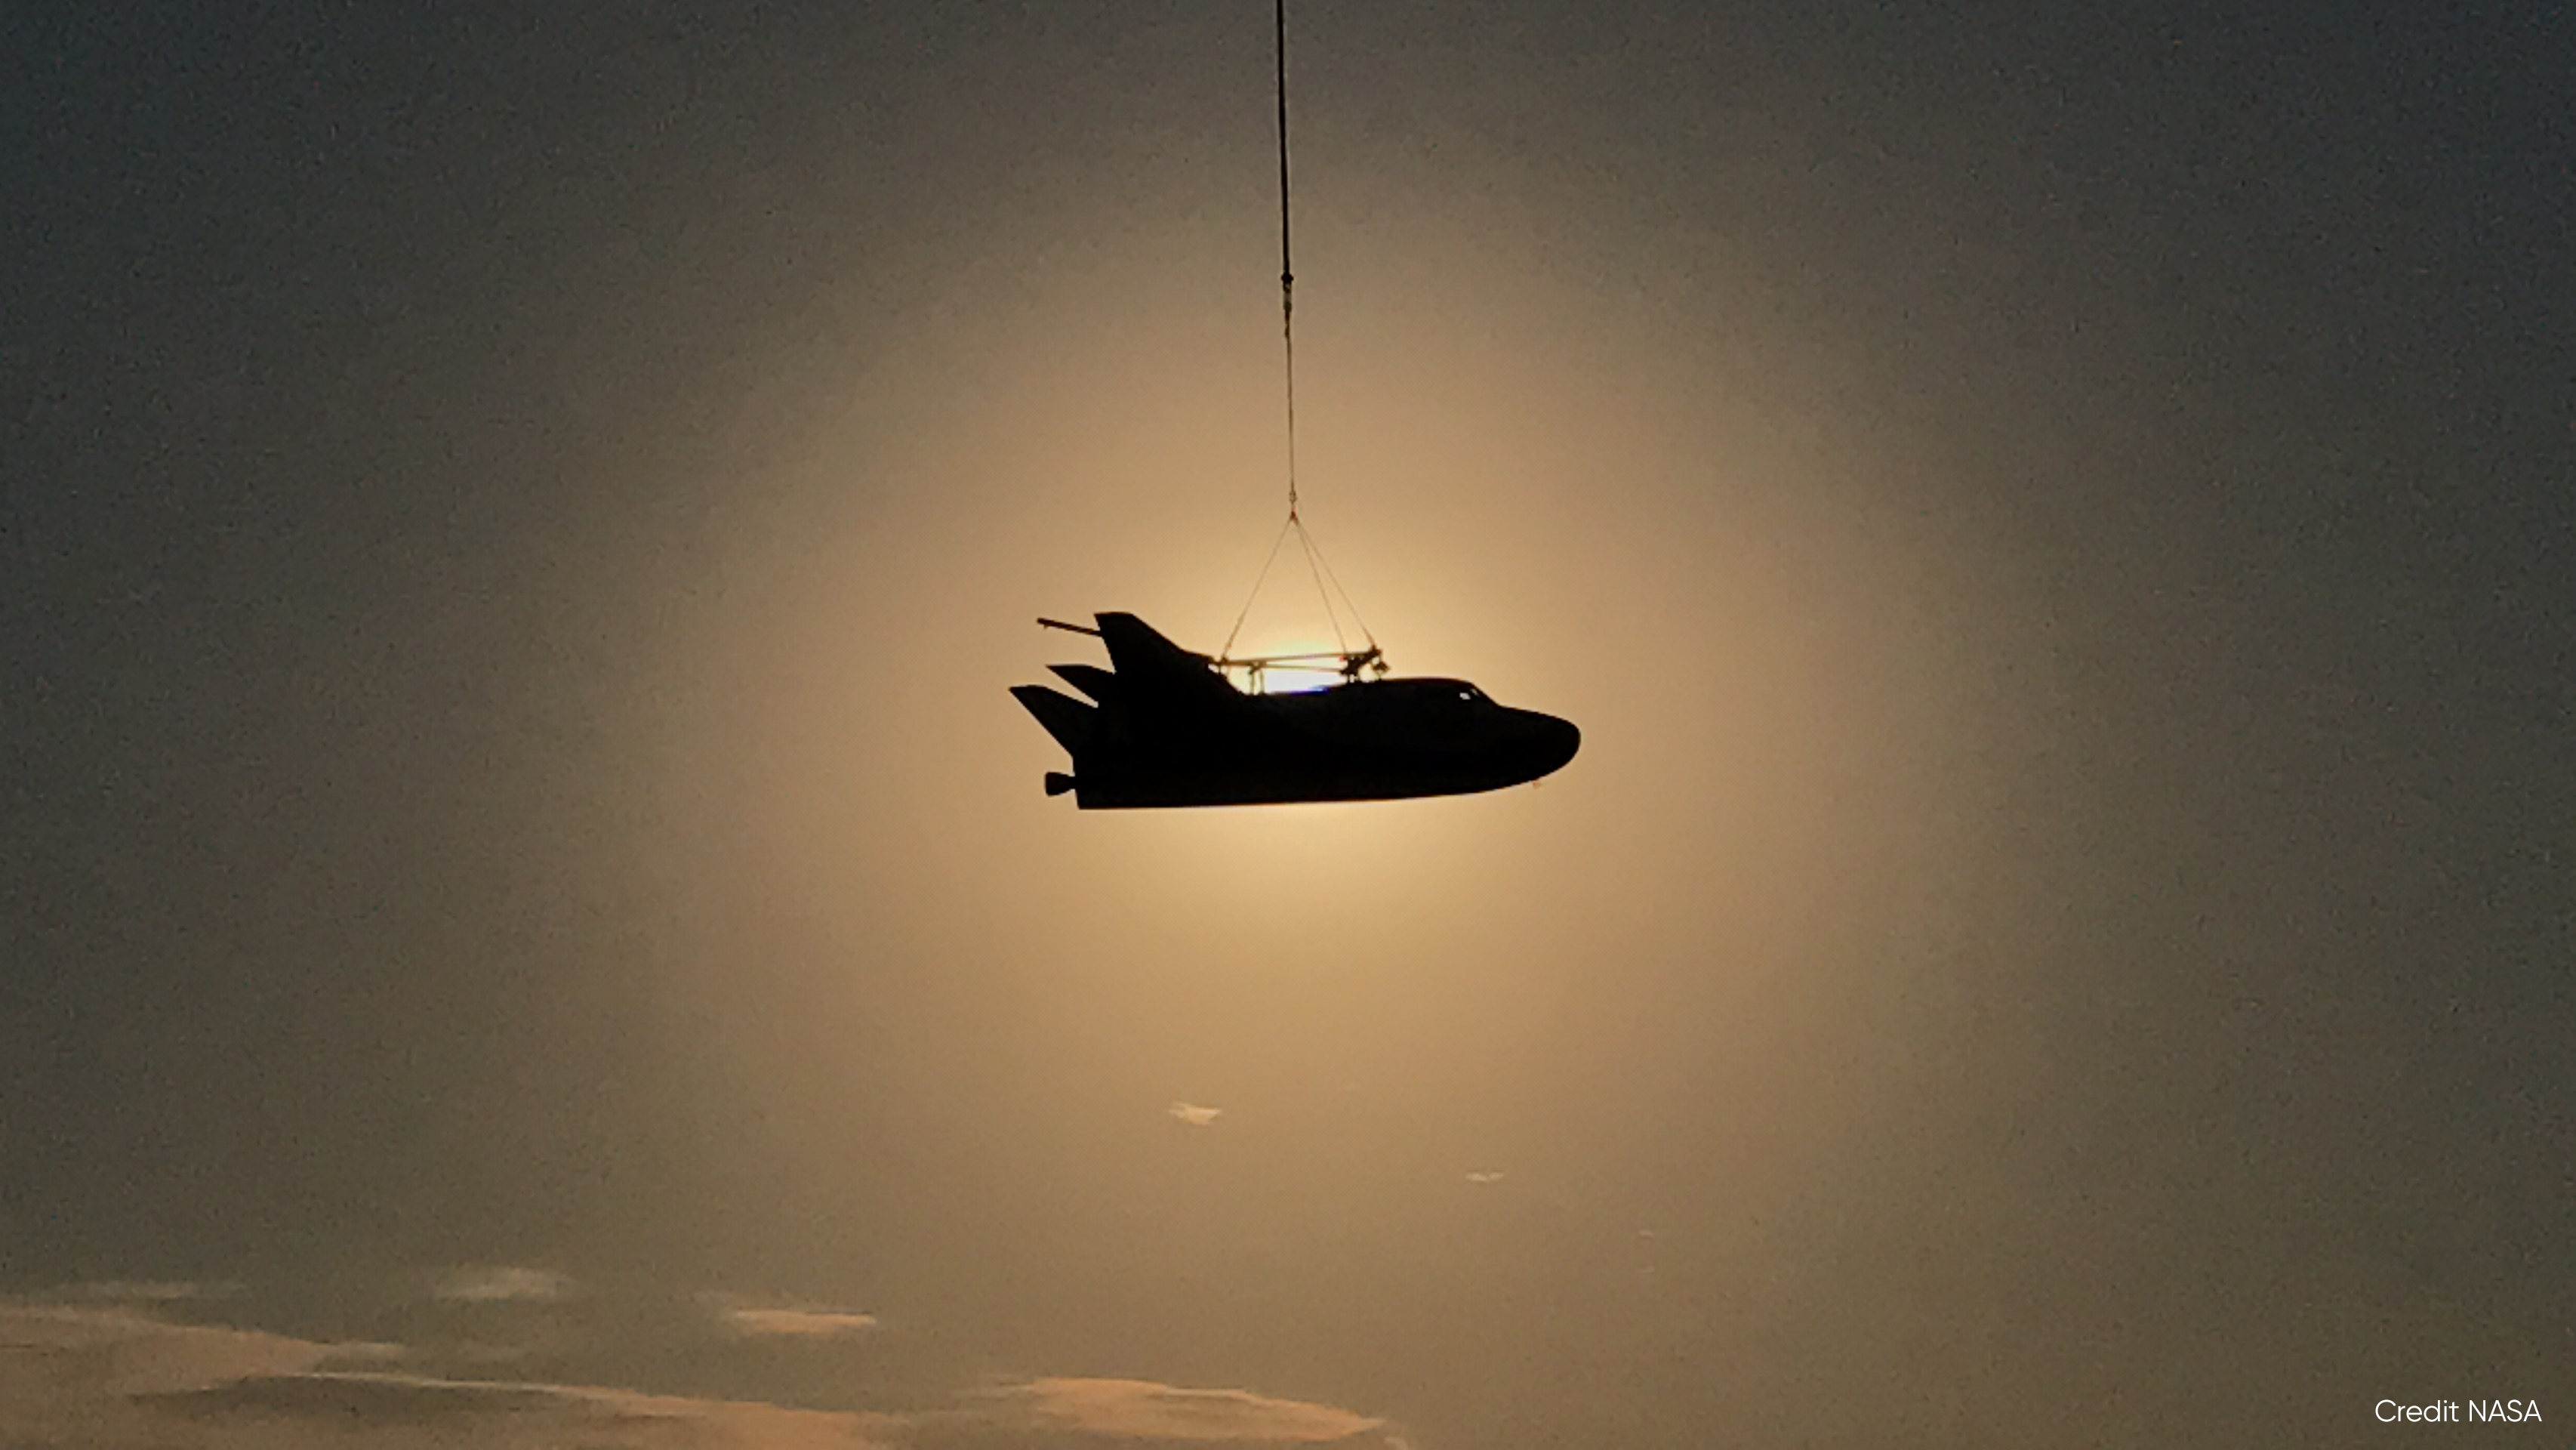 Sierra Nevada Corporation's Dream Chaser Spacecraft Successfully Completes Captive Carry Test at NASA Armstrong